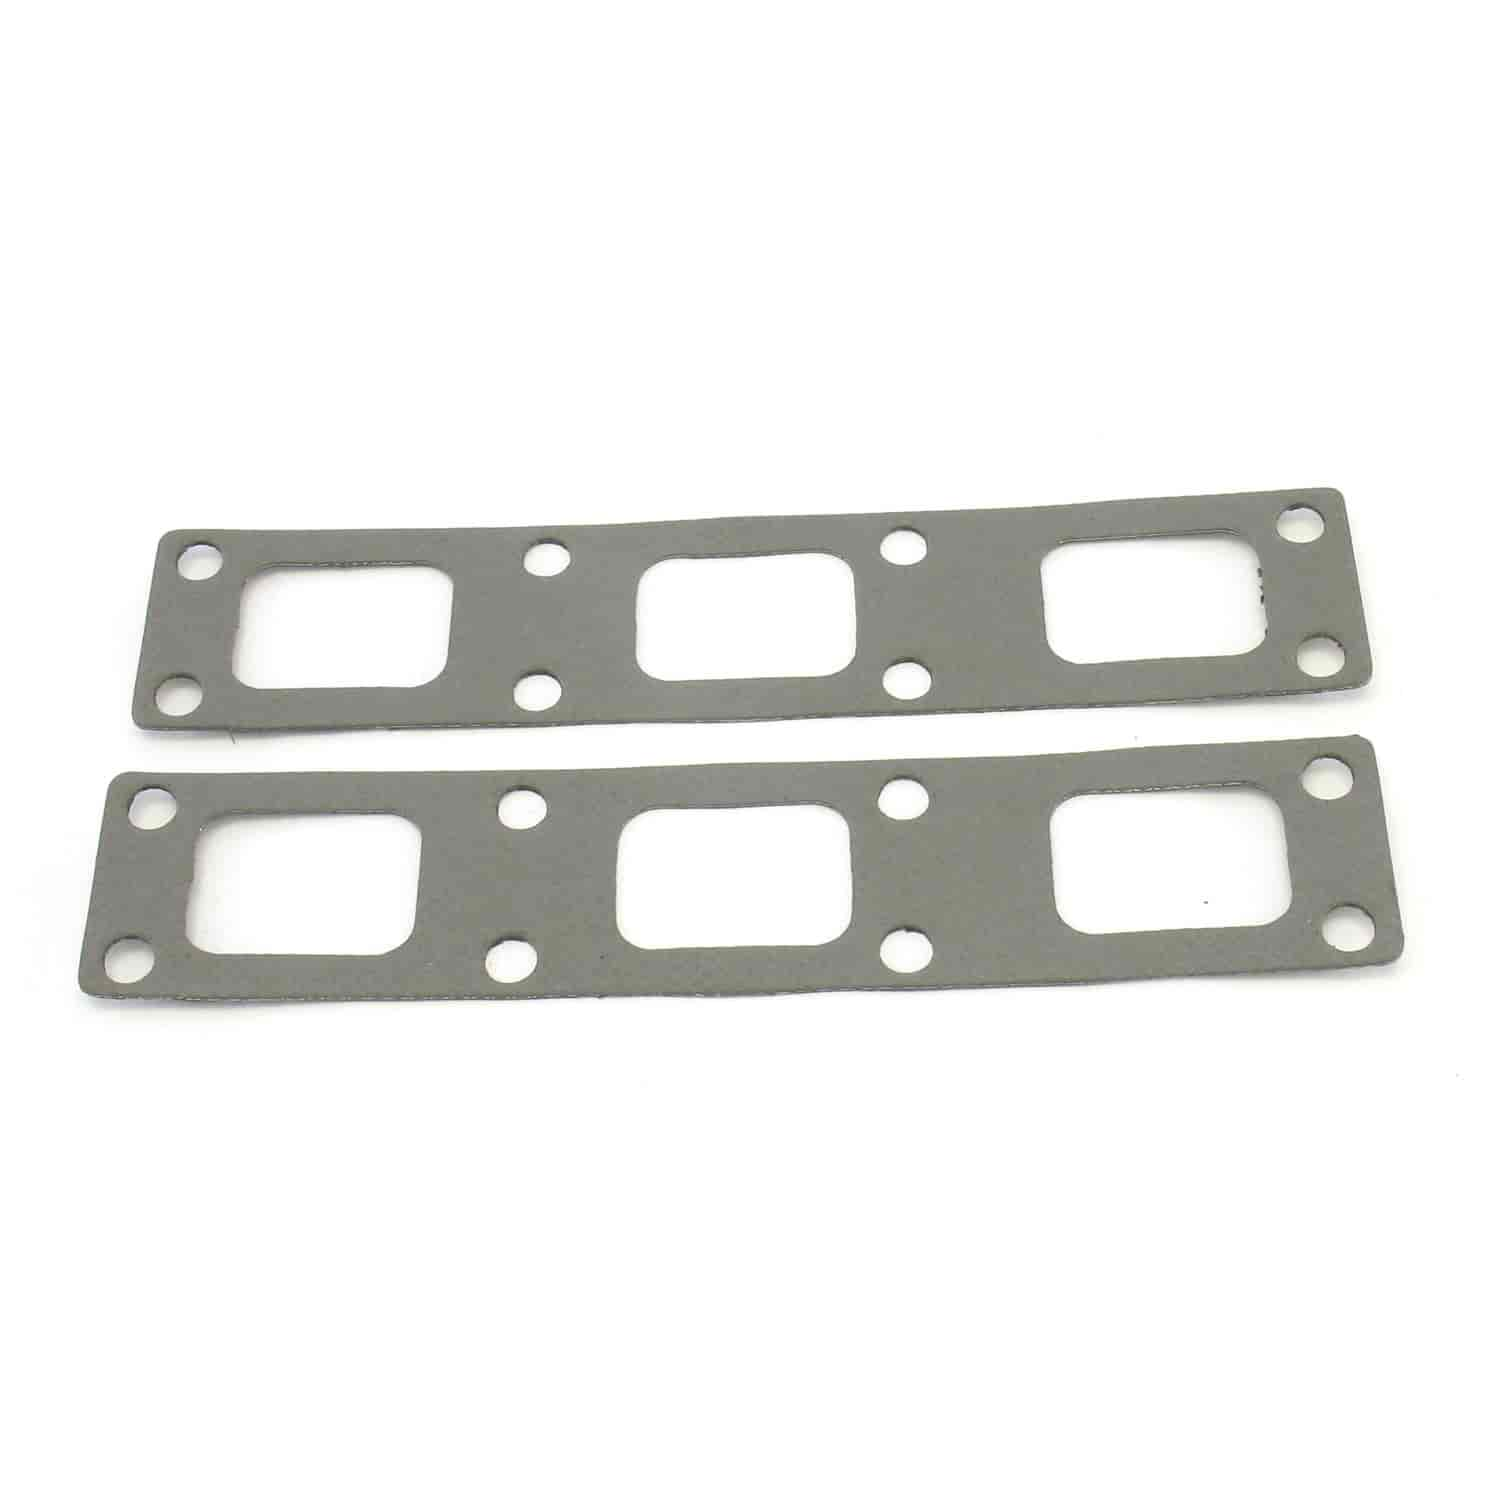 Patriot Exhaust H7555 - Patriot Exhaust Header Flange Gaskets